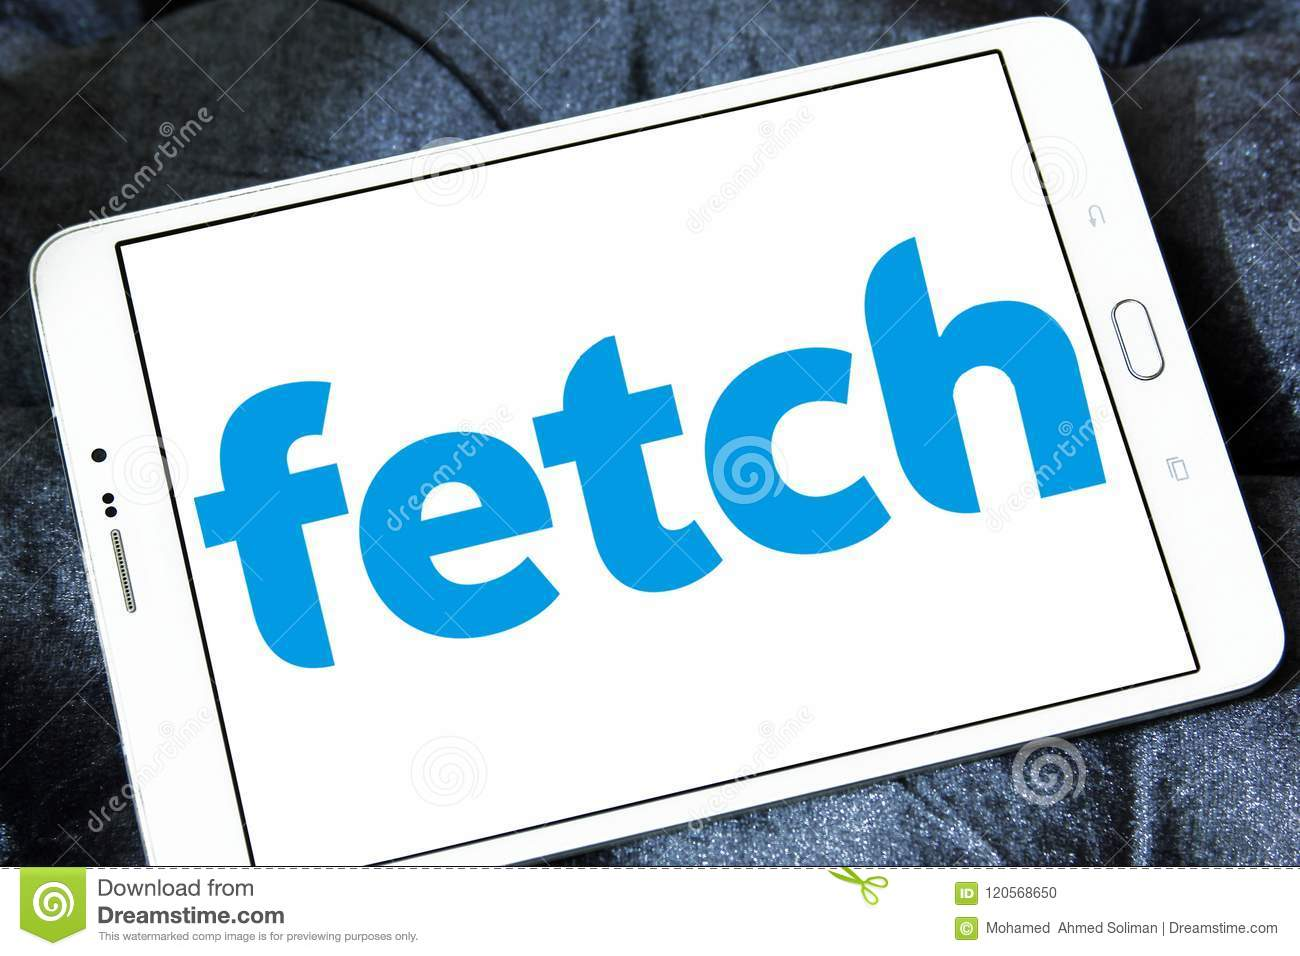 Fetch TV logo editorial image  Image of fetch, mobile - 120568650